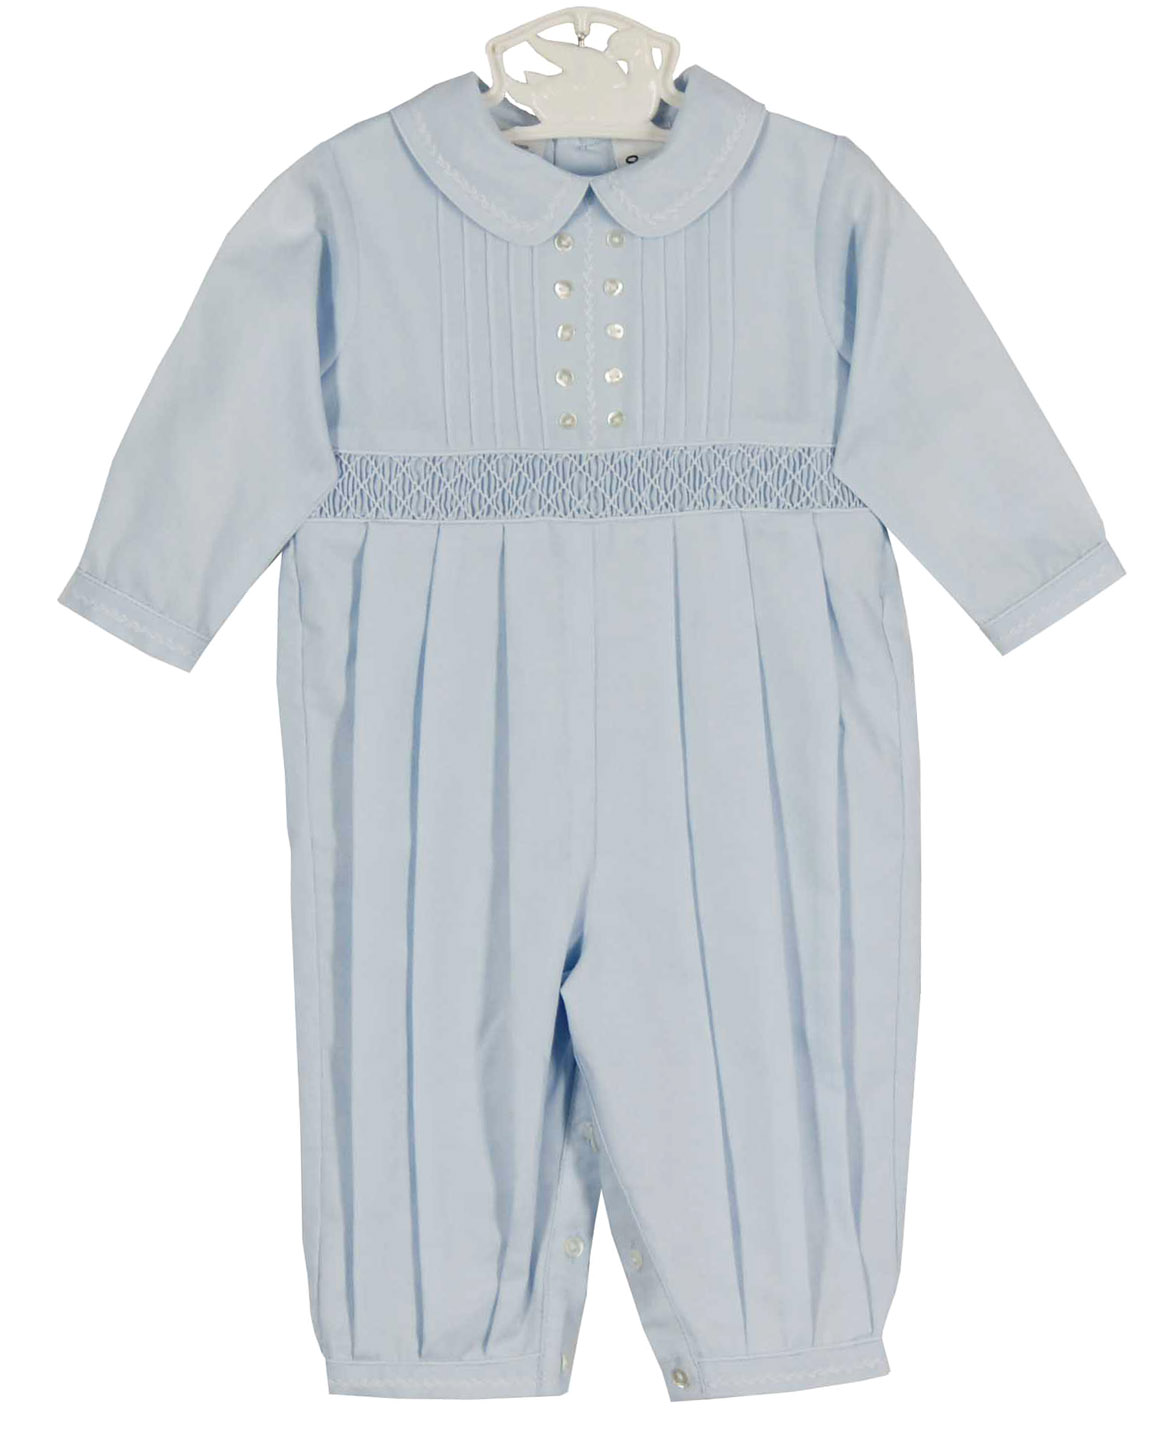 ce96df526 NEW Sarah Louise Blue Smocked Romper with Pintucks and White ...